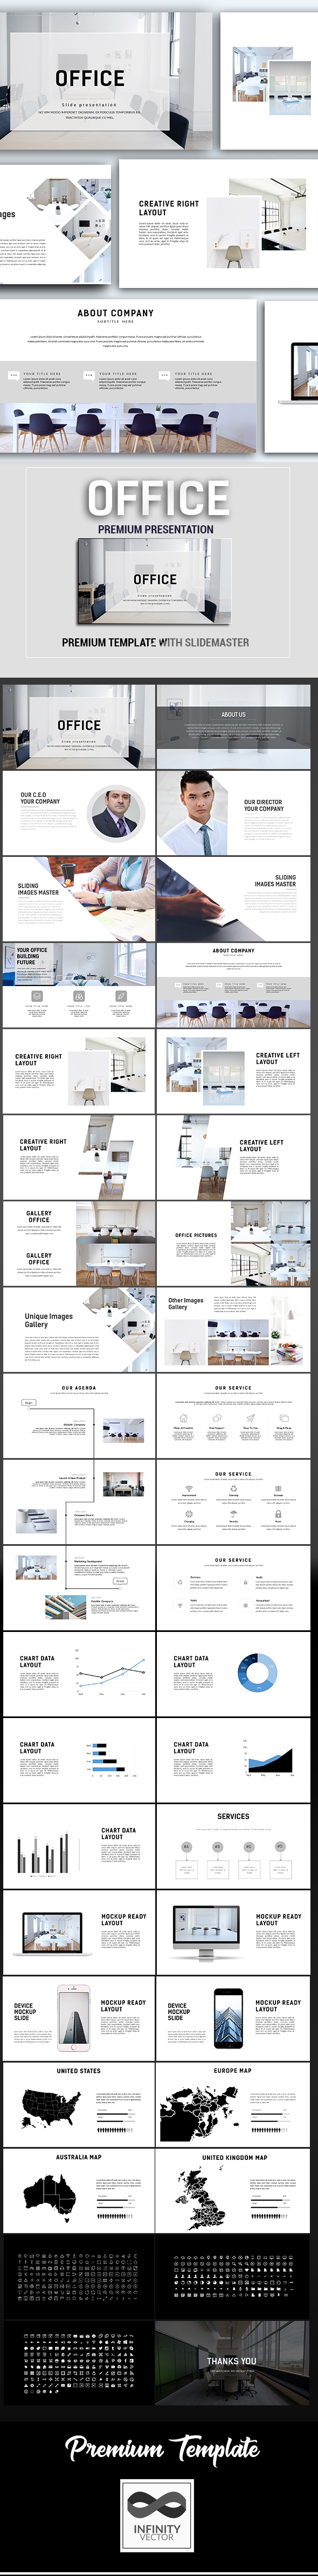 GraphicRiver Office Minimal Powerpoint Template 20916145